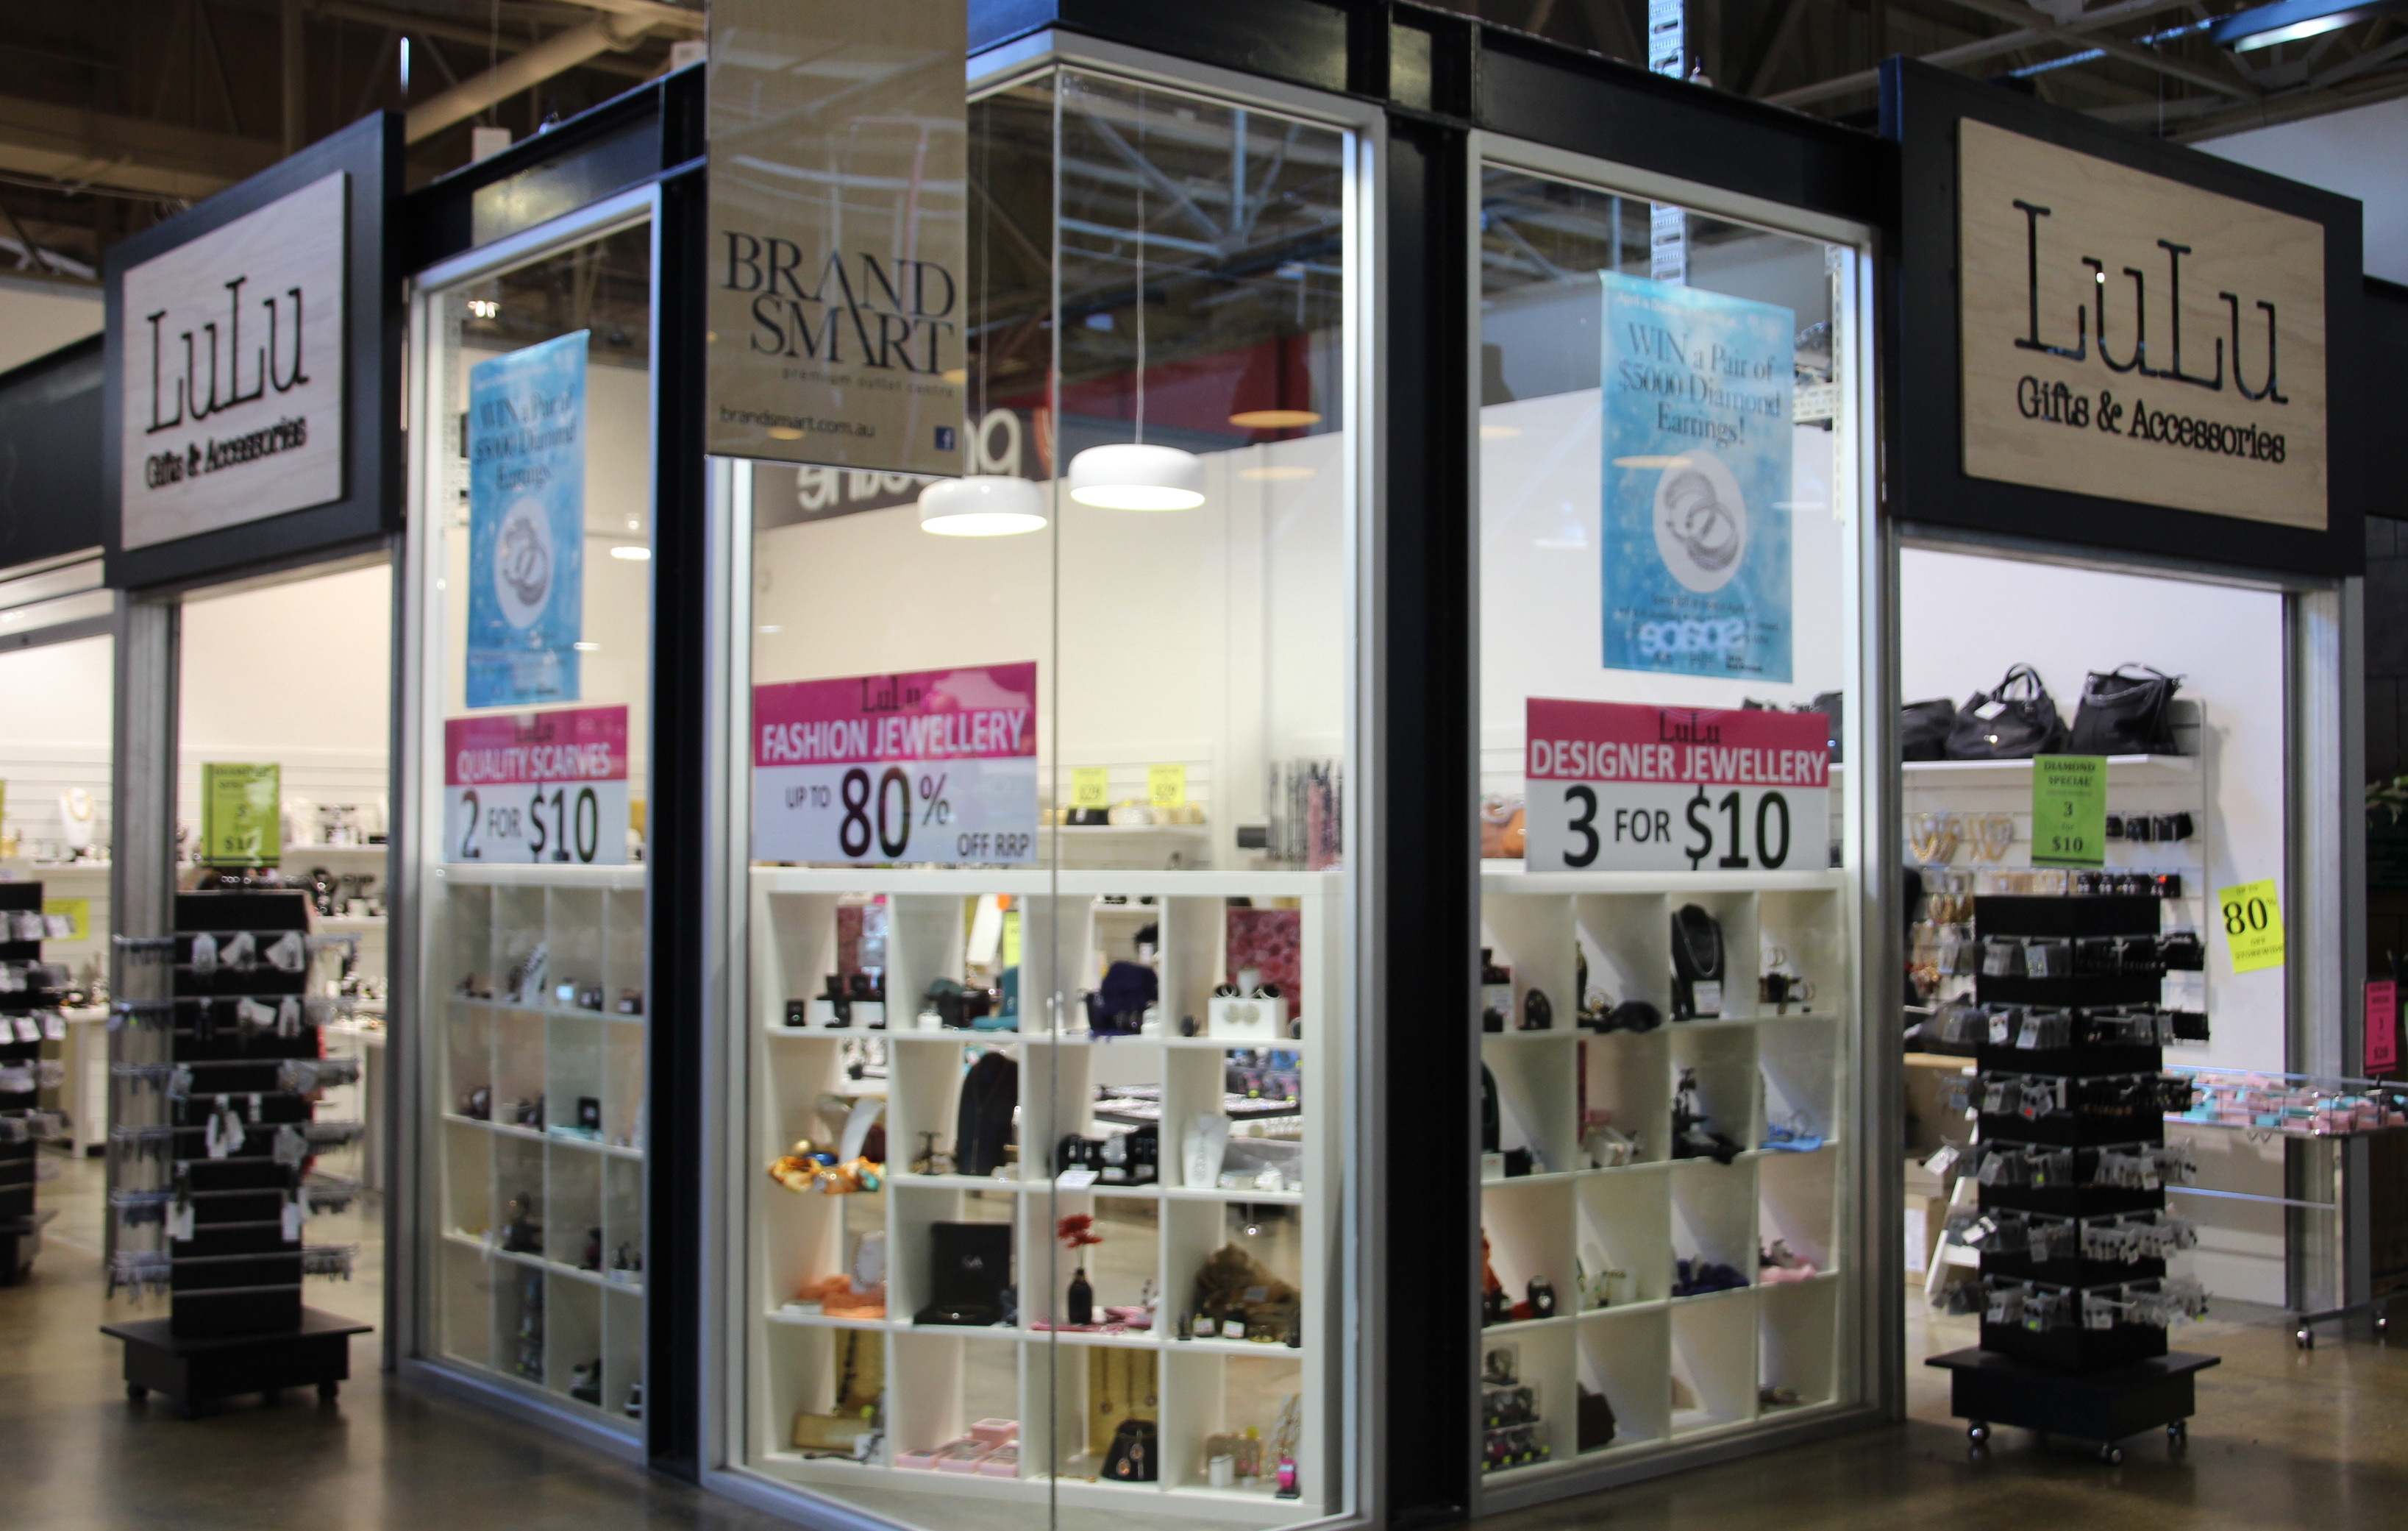 Lulu Gifts & Accessories at First In Best Dressed Event